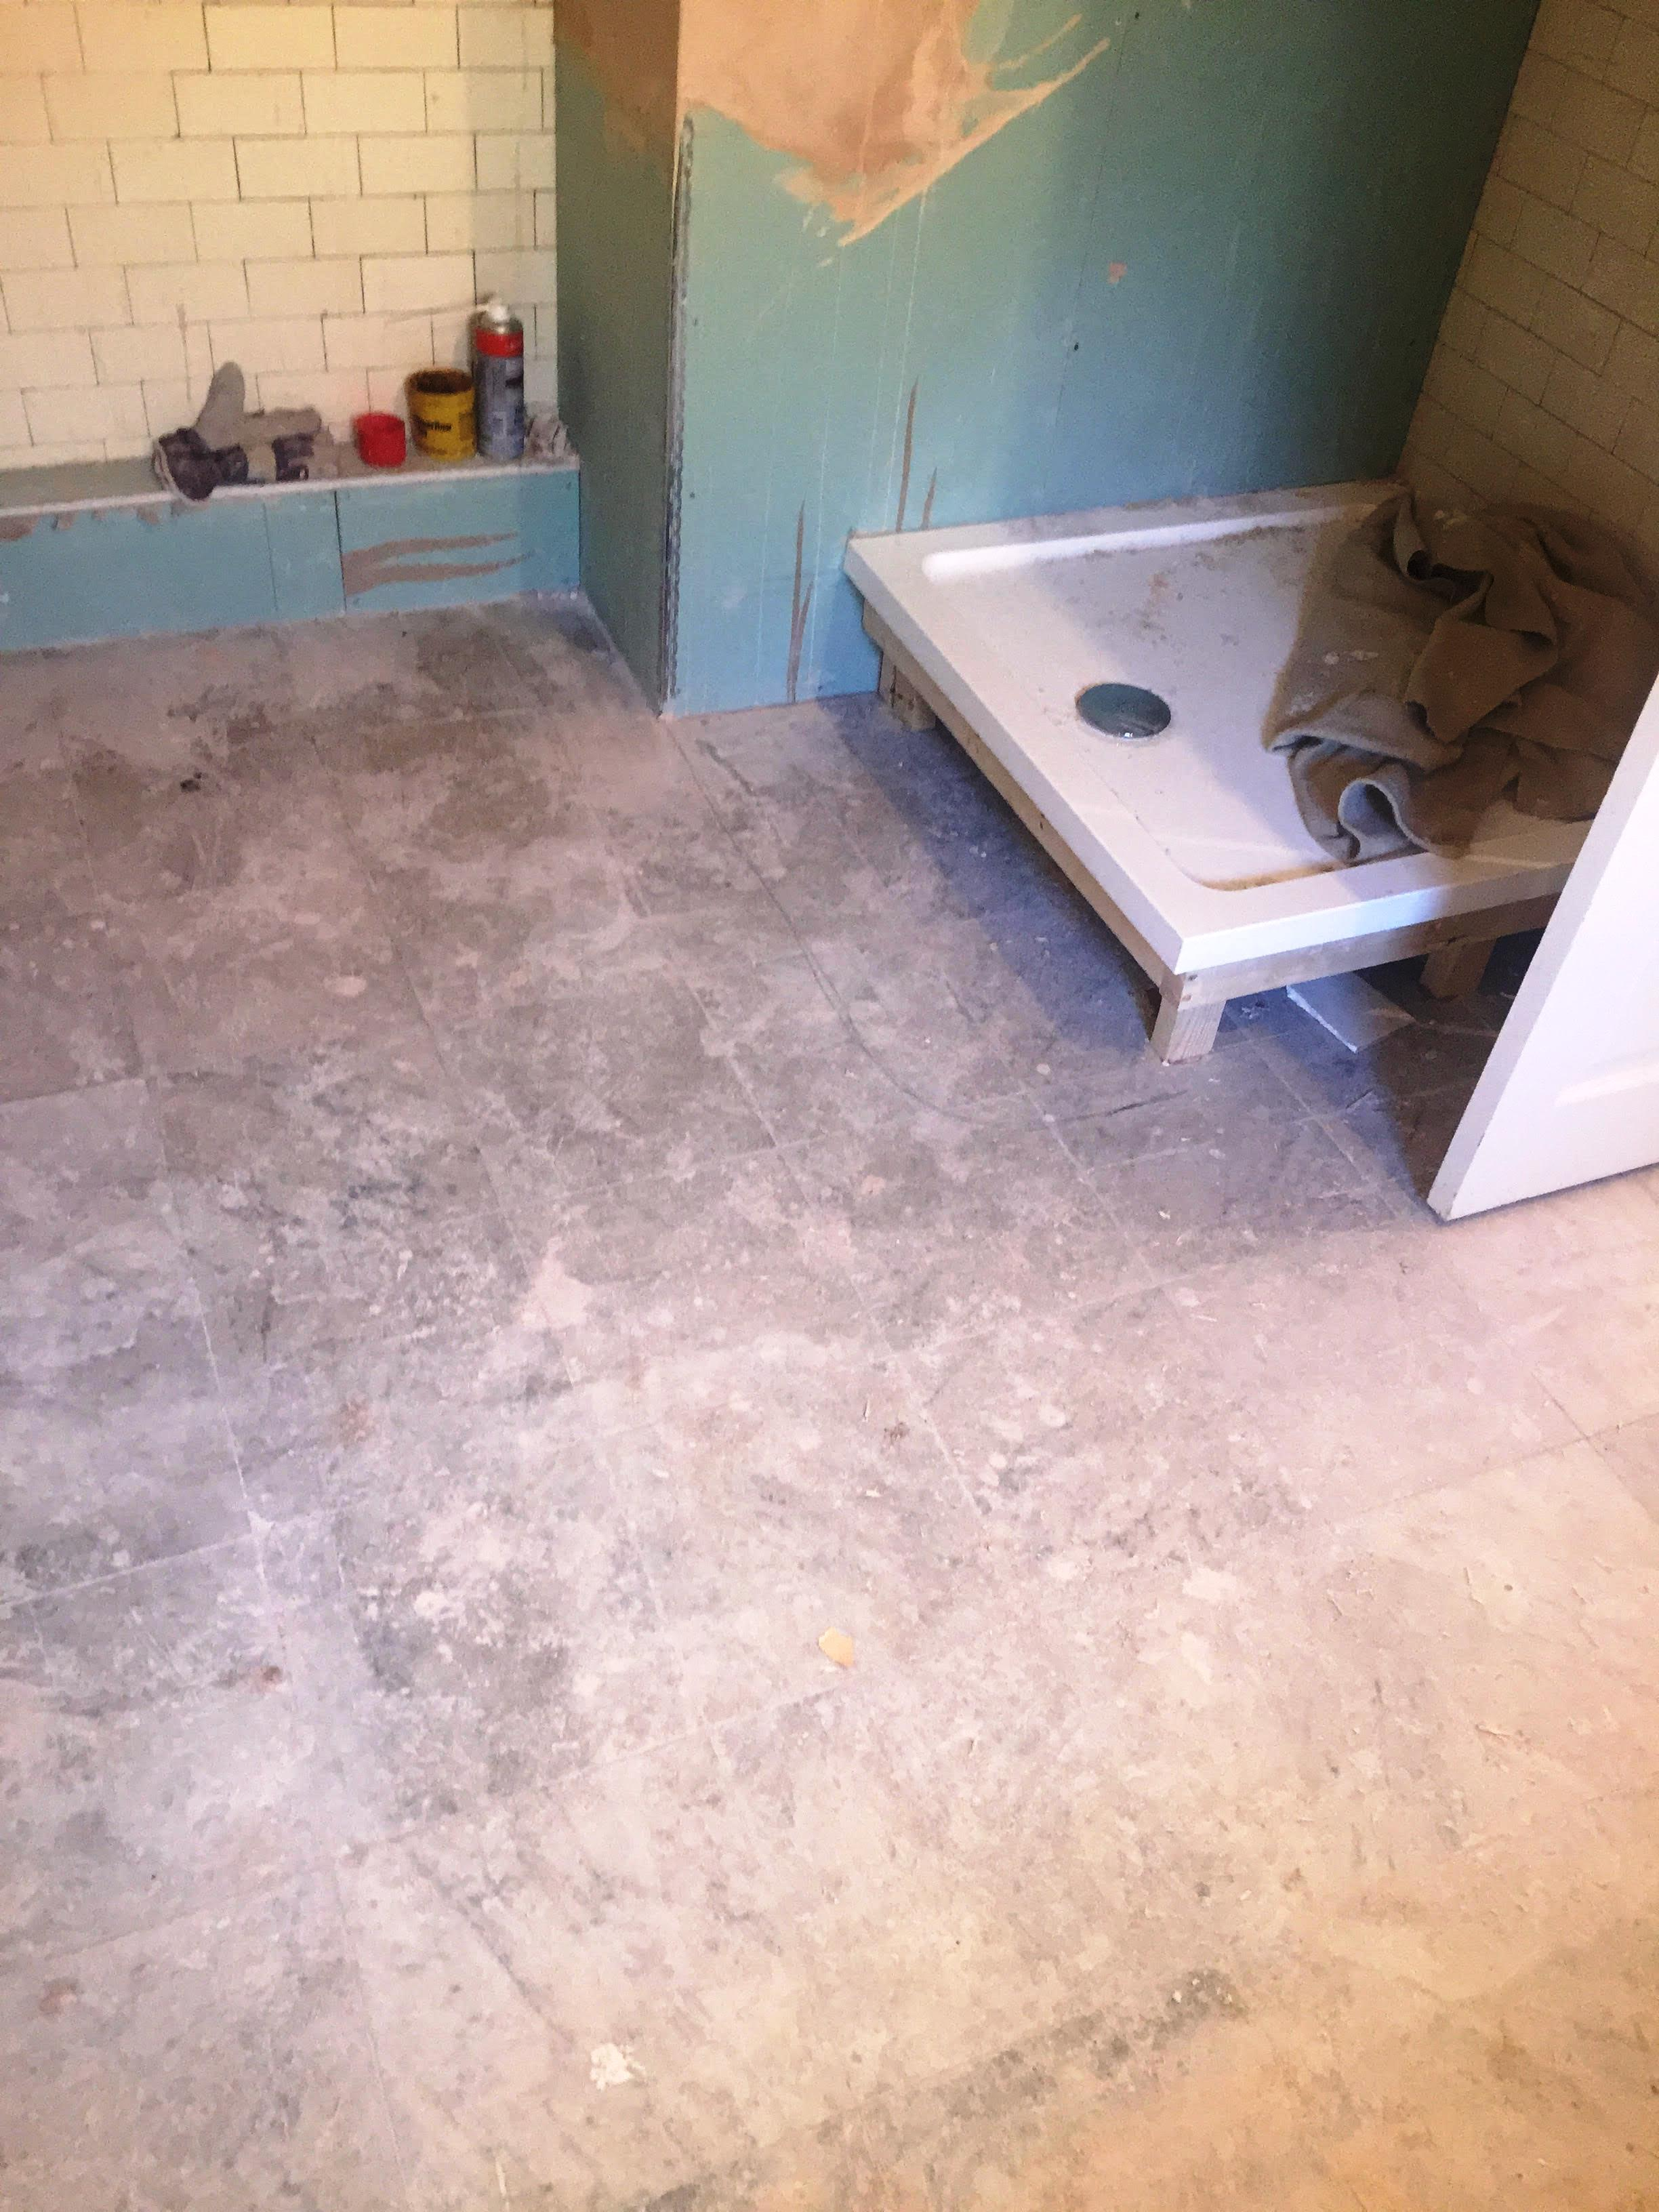 Marble Tiled Bathroom Floor Before Restoration Walkerburn ...